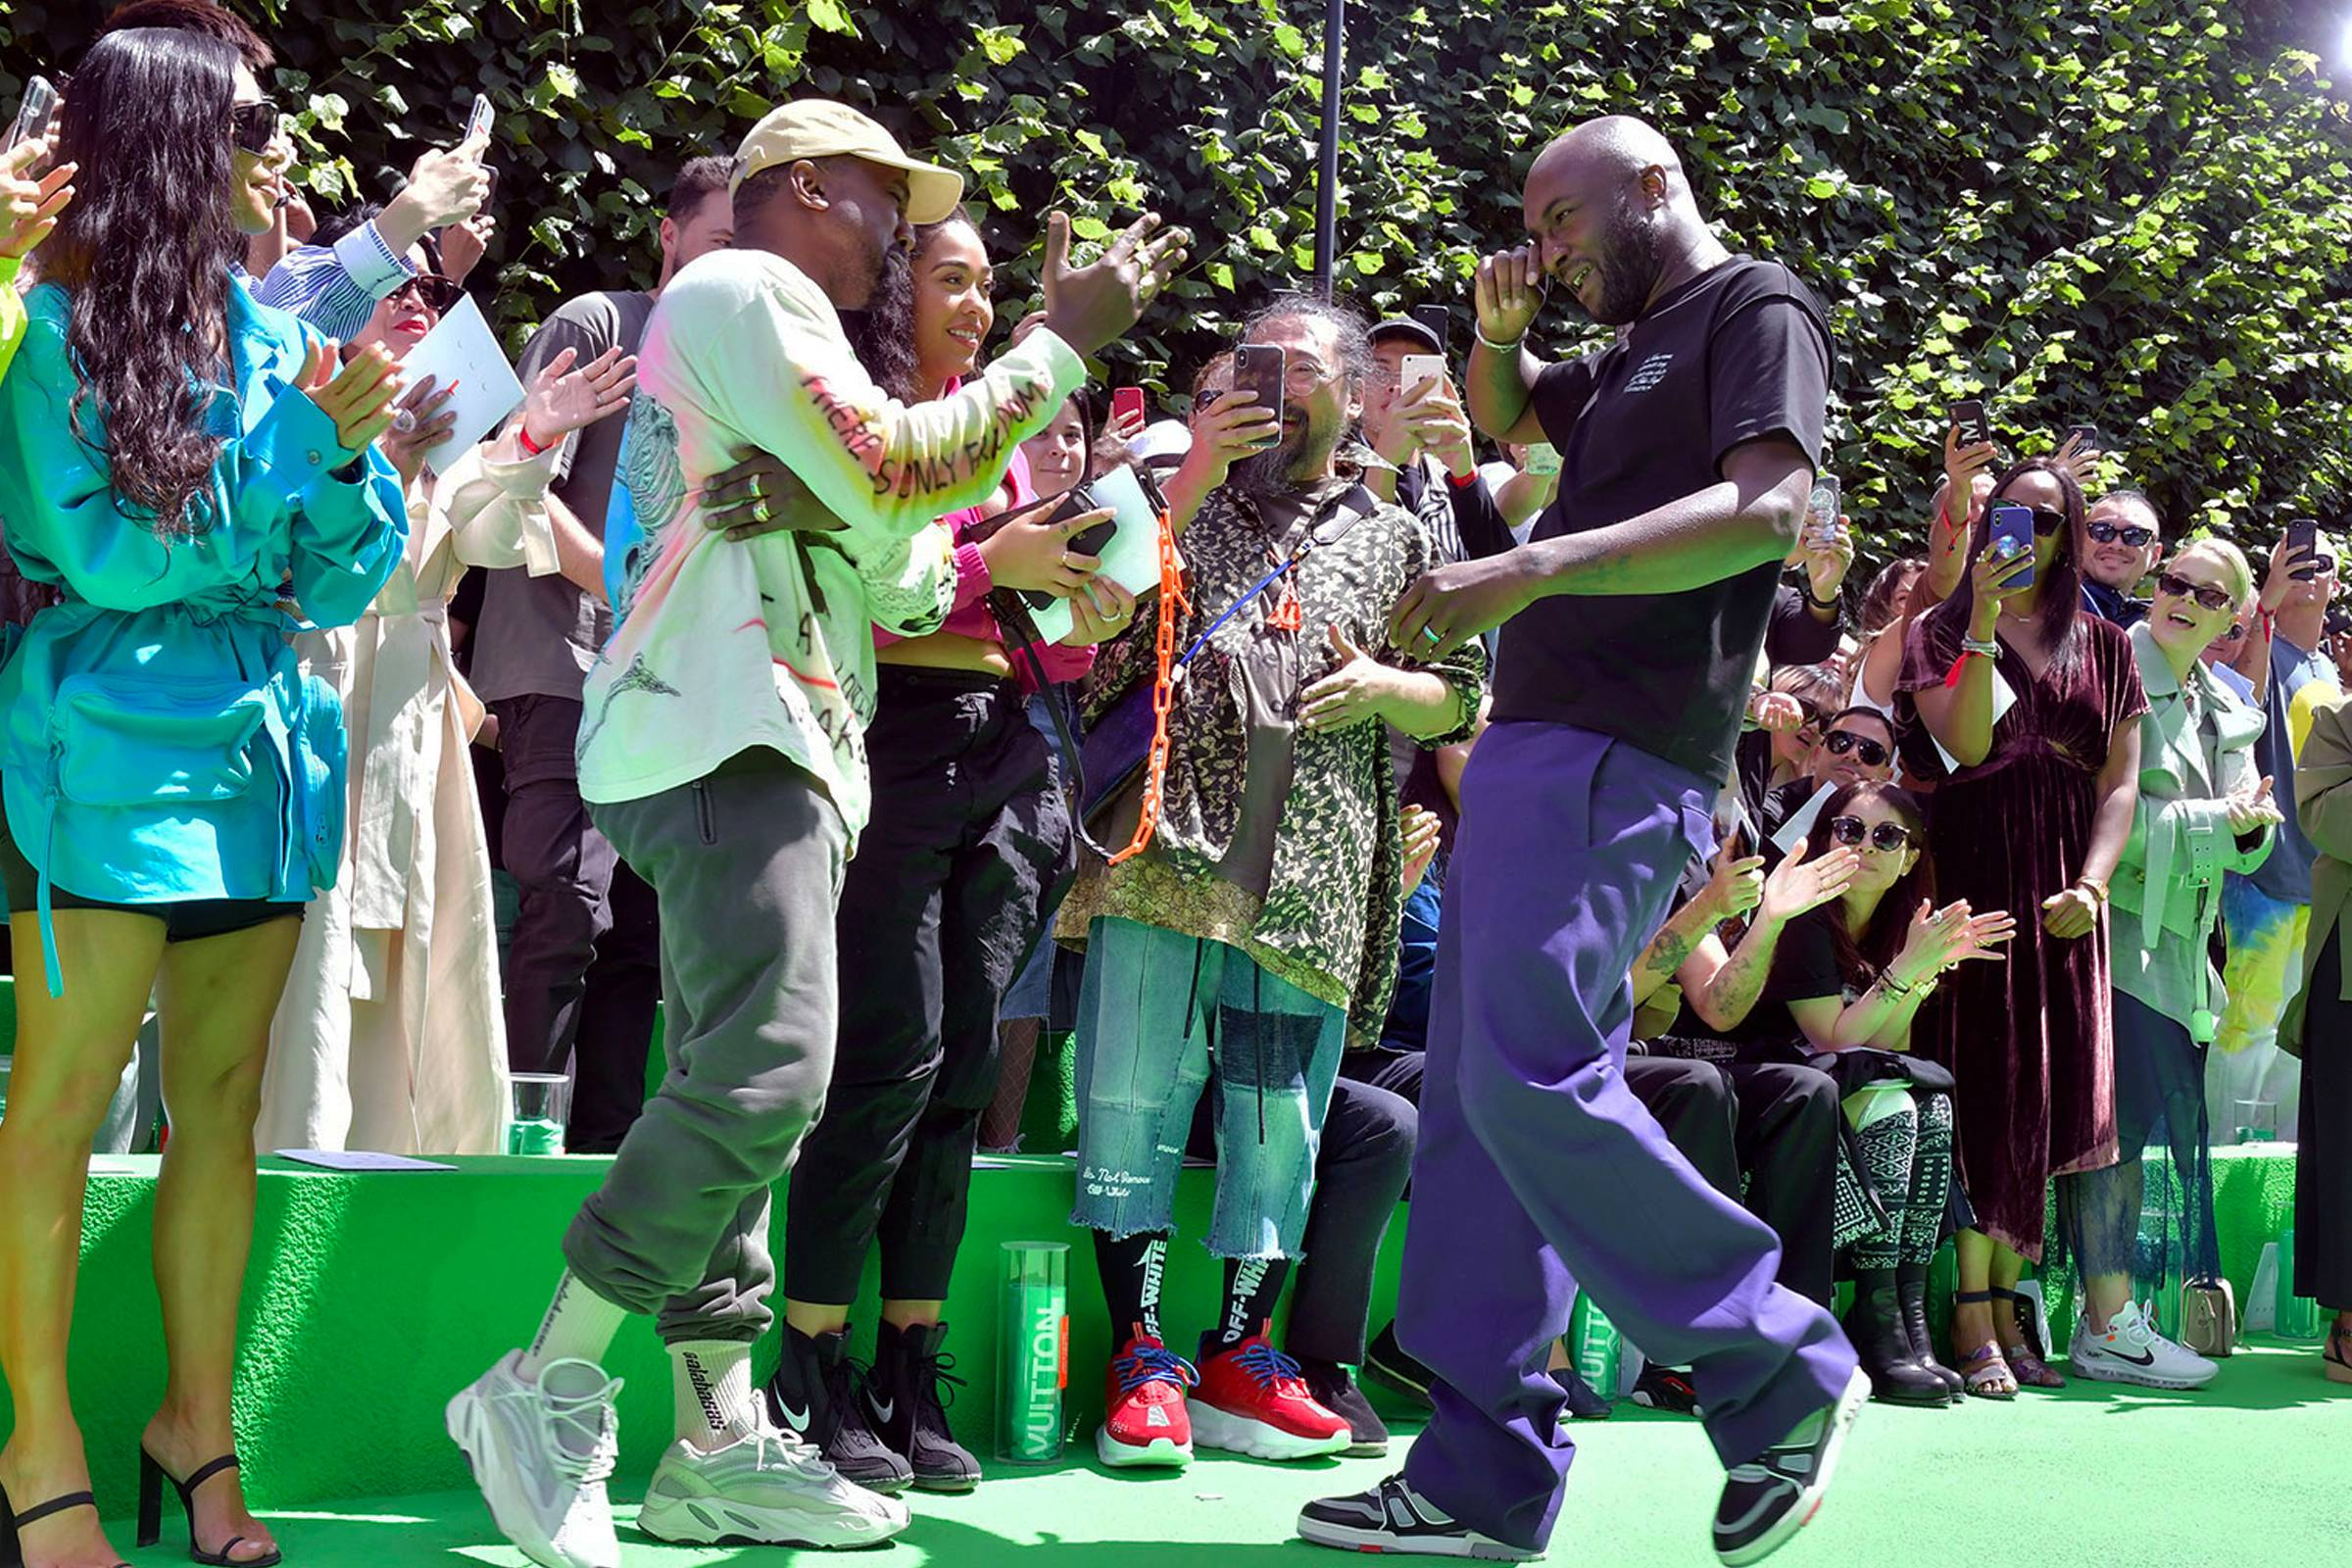 Virgil Abloh and Kanye West during the finale of Abloh's debut Spring/Summer 2019 Louis Vuitton menswear show